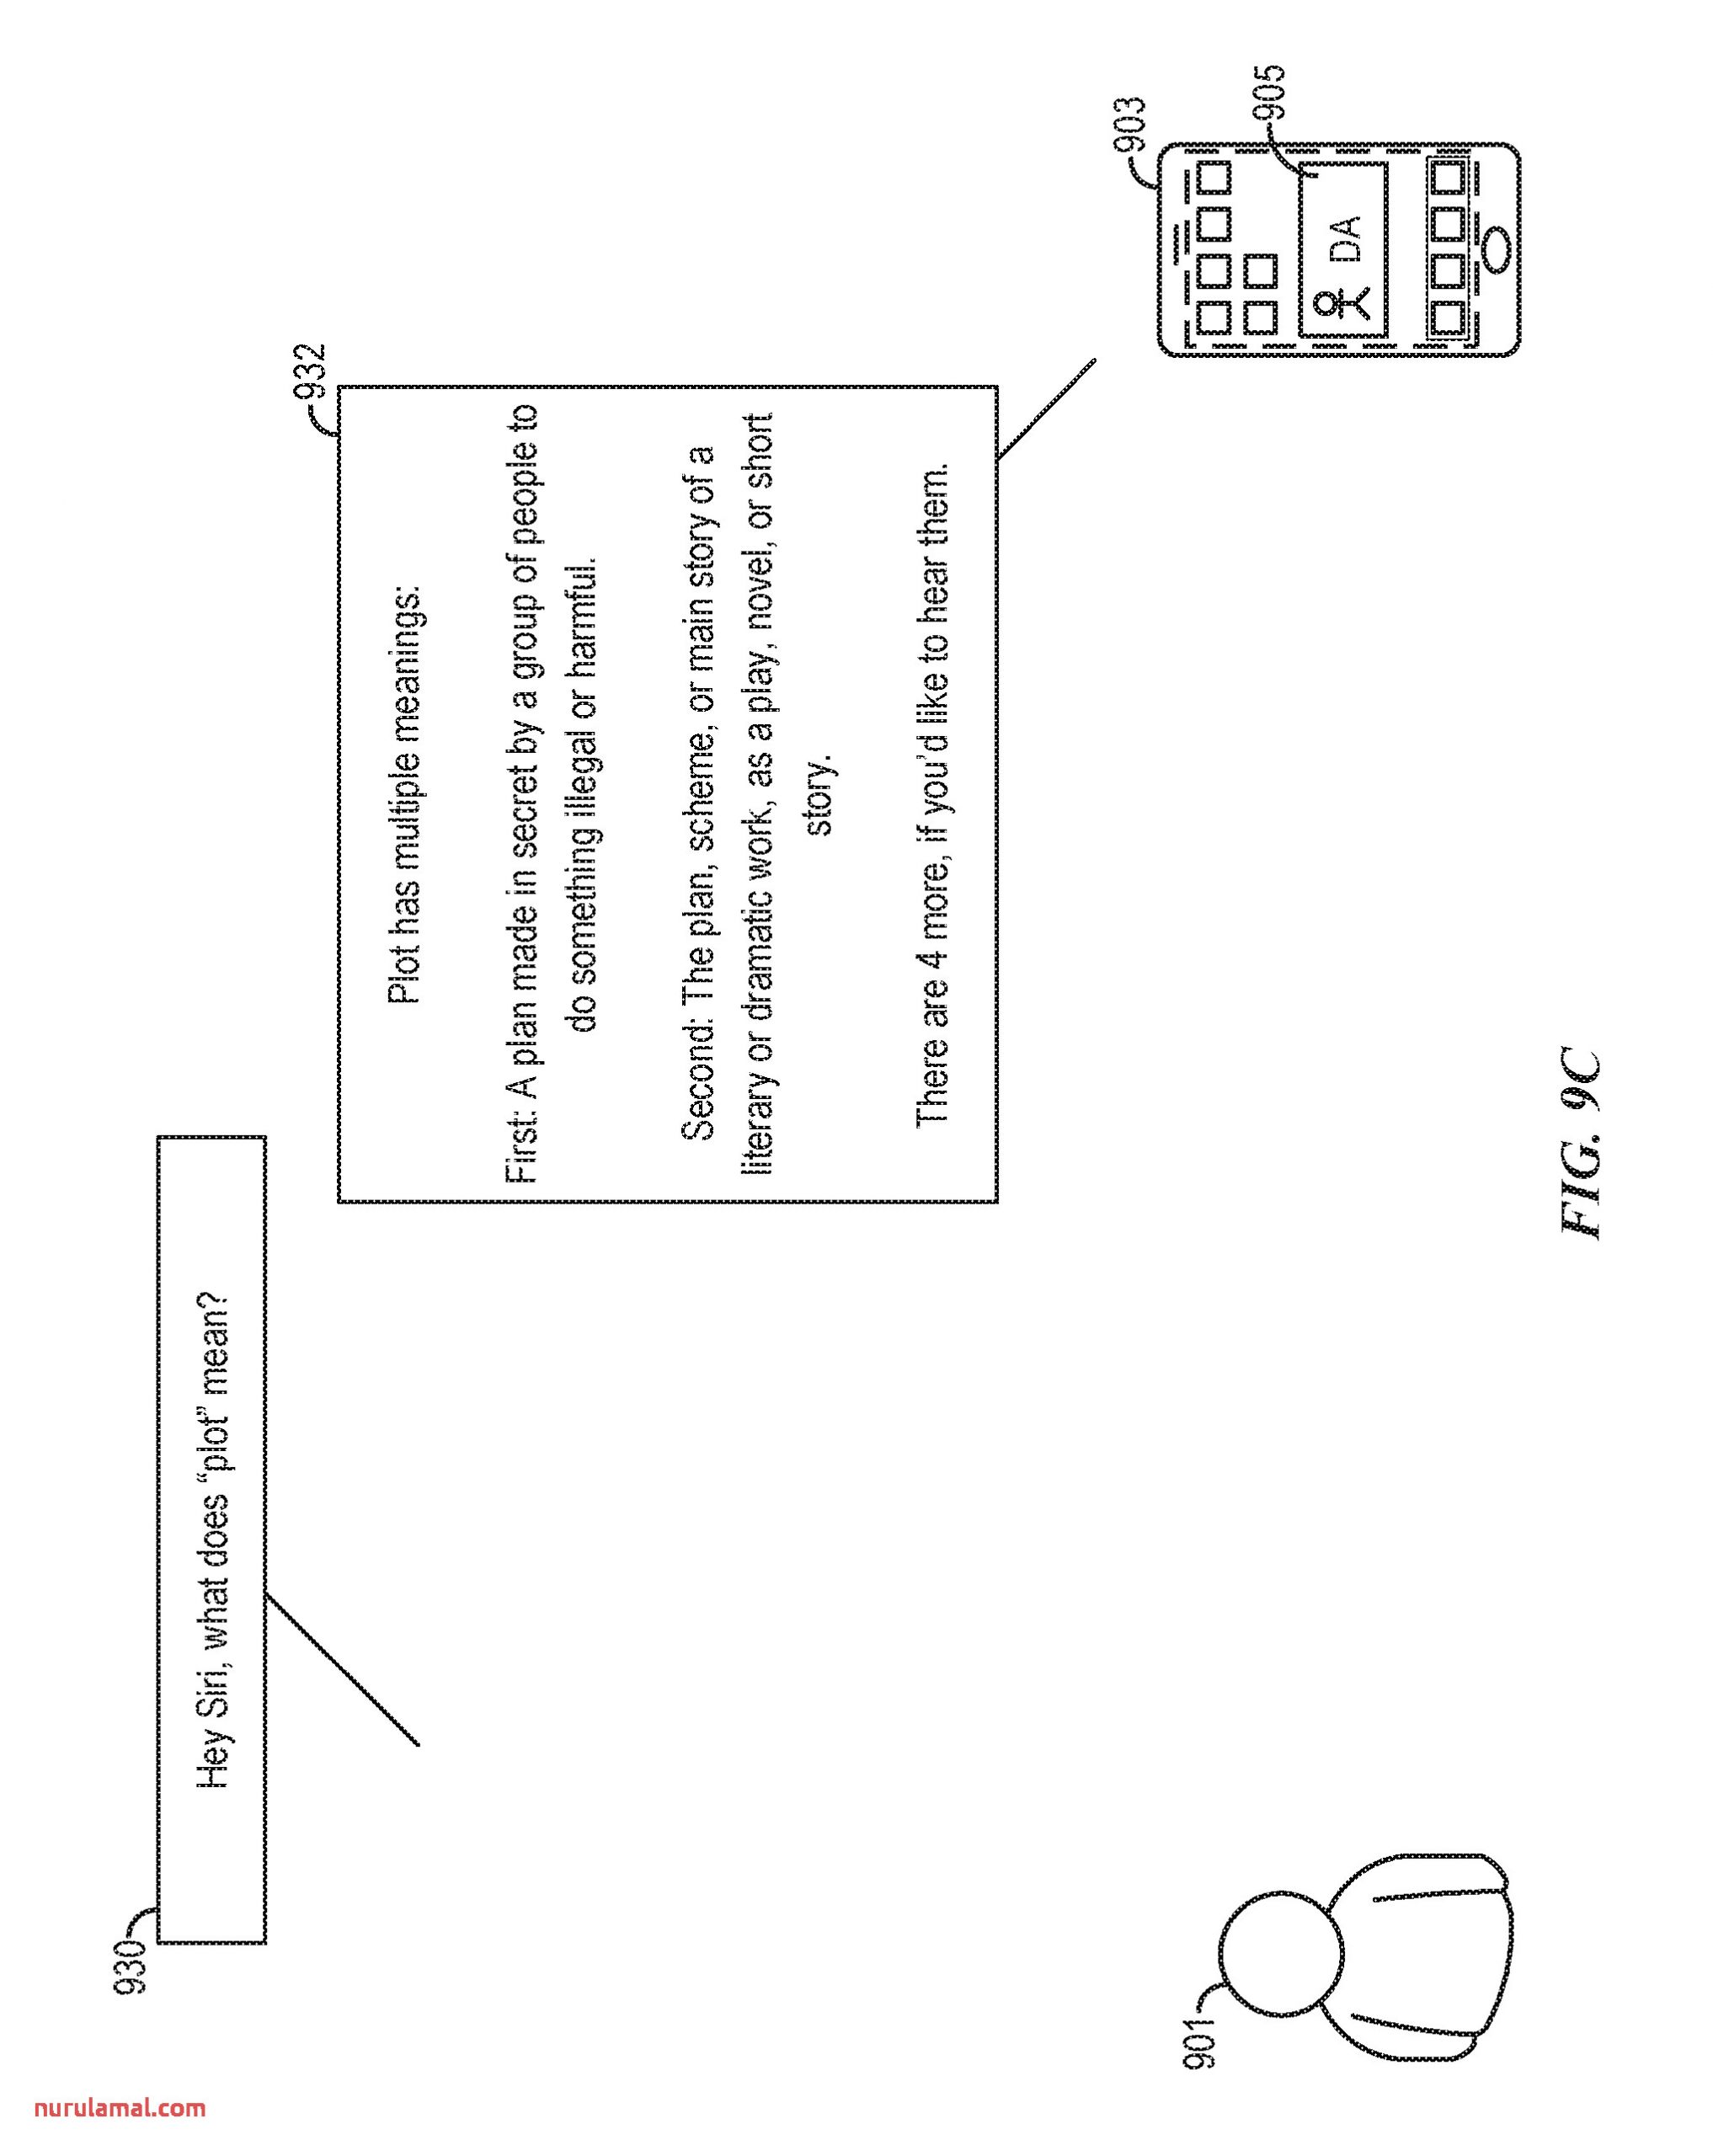 Us B2 Intelligent List Reading Google Patents